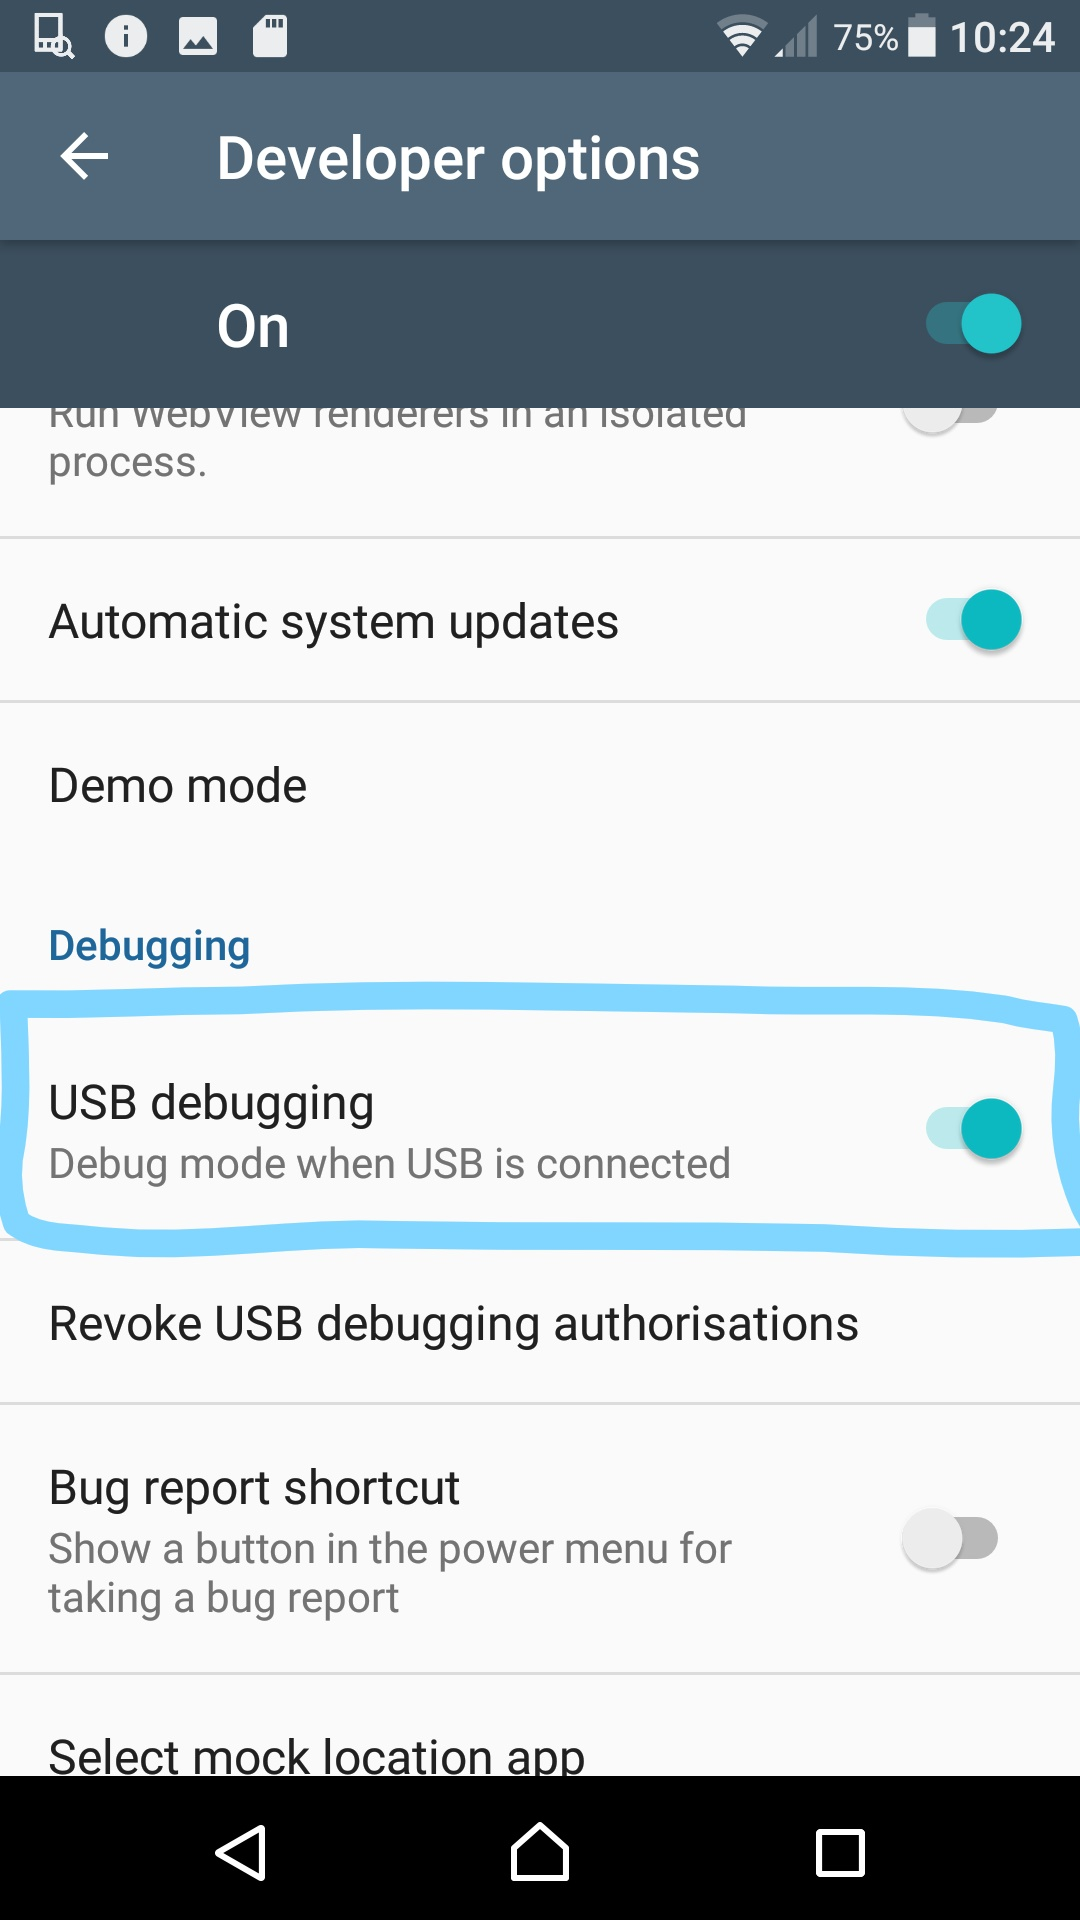 Xperia-Android-Settings-DeveloperOptions-USBdebugging.jpg